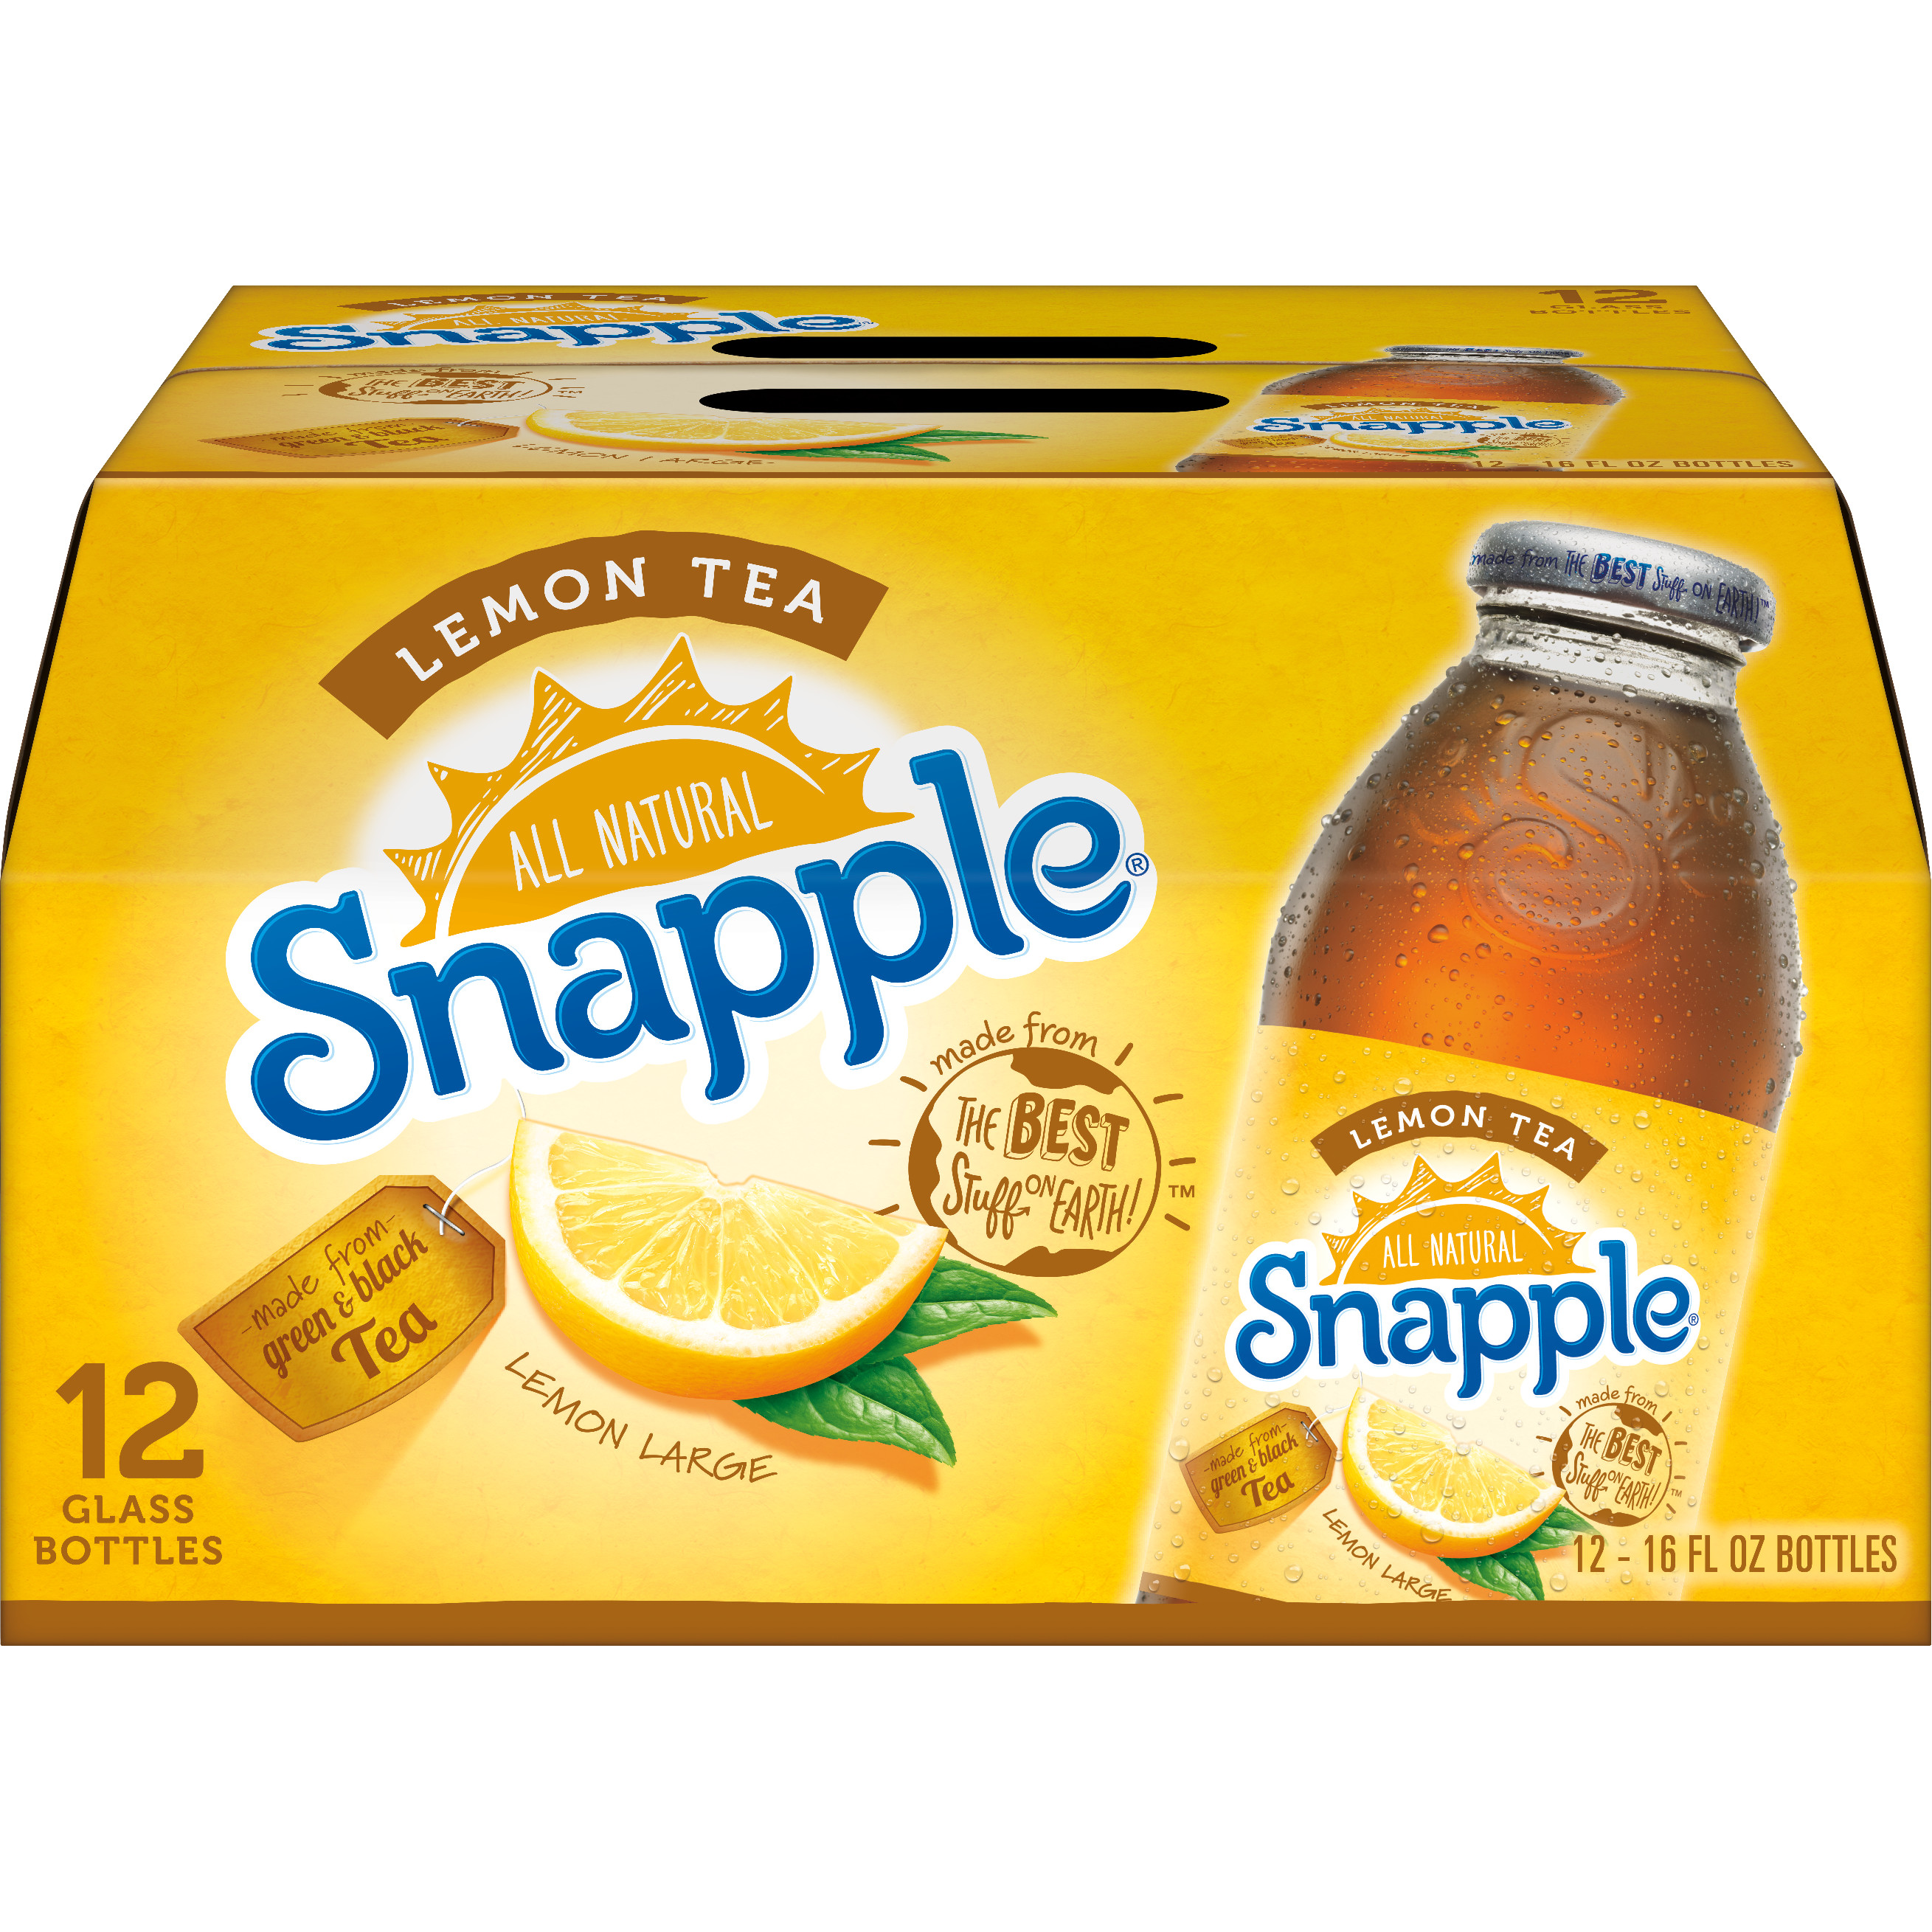 Snapple Lemon Tea, 16 fl oz, 12 pack